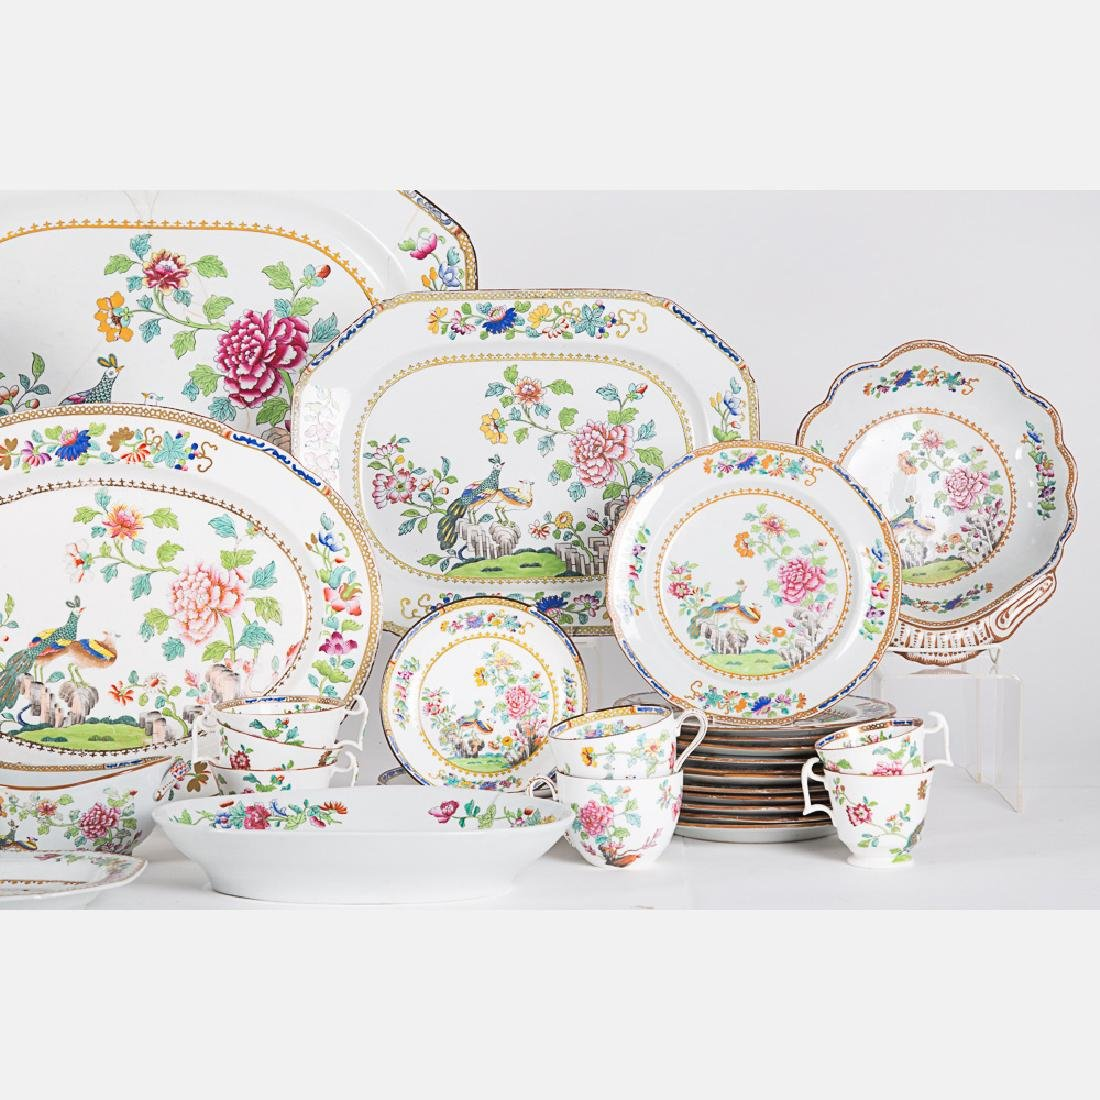 A Partial Spode Stoneware Luncheon Set in the Peacock - 4